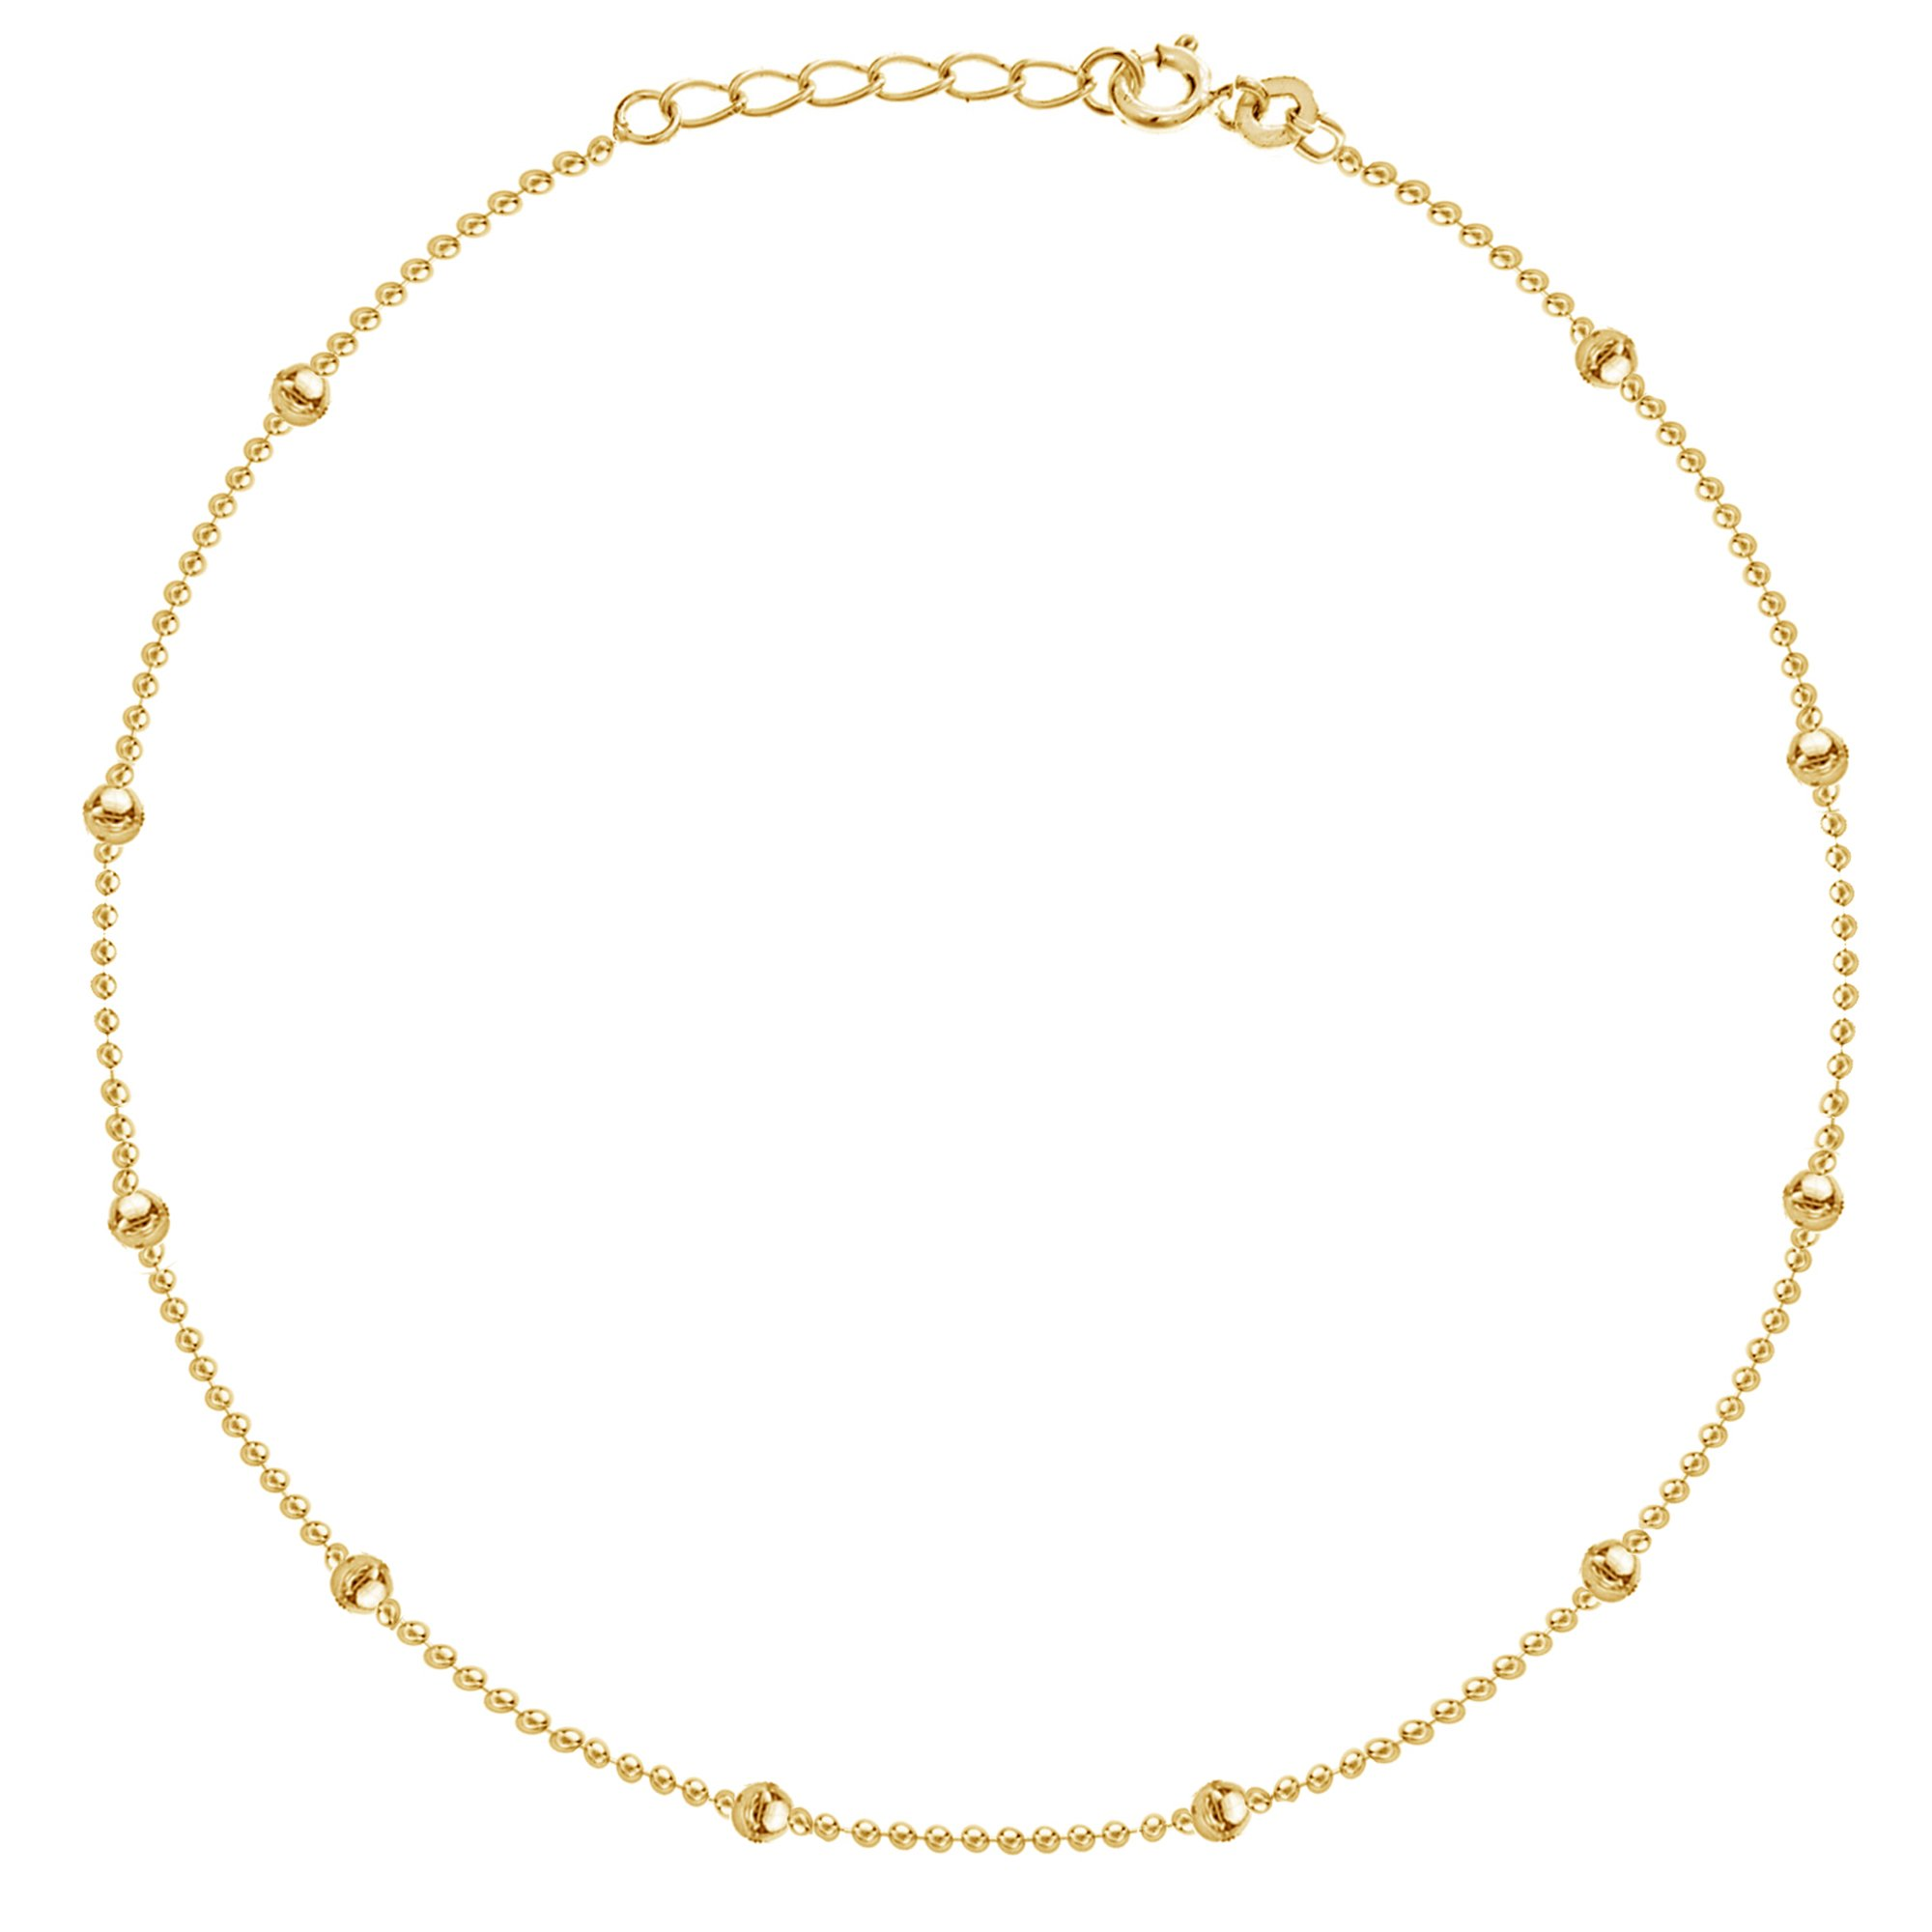 14k Yellow Gold Bead Adjustable Anklet Ankle Bracelet 9-10 Inches